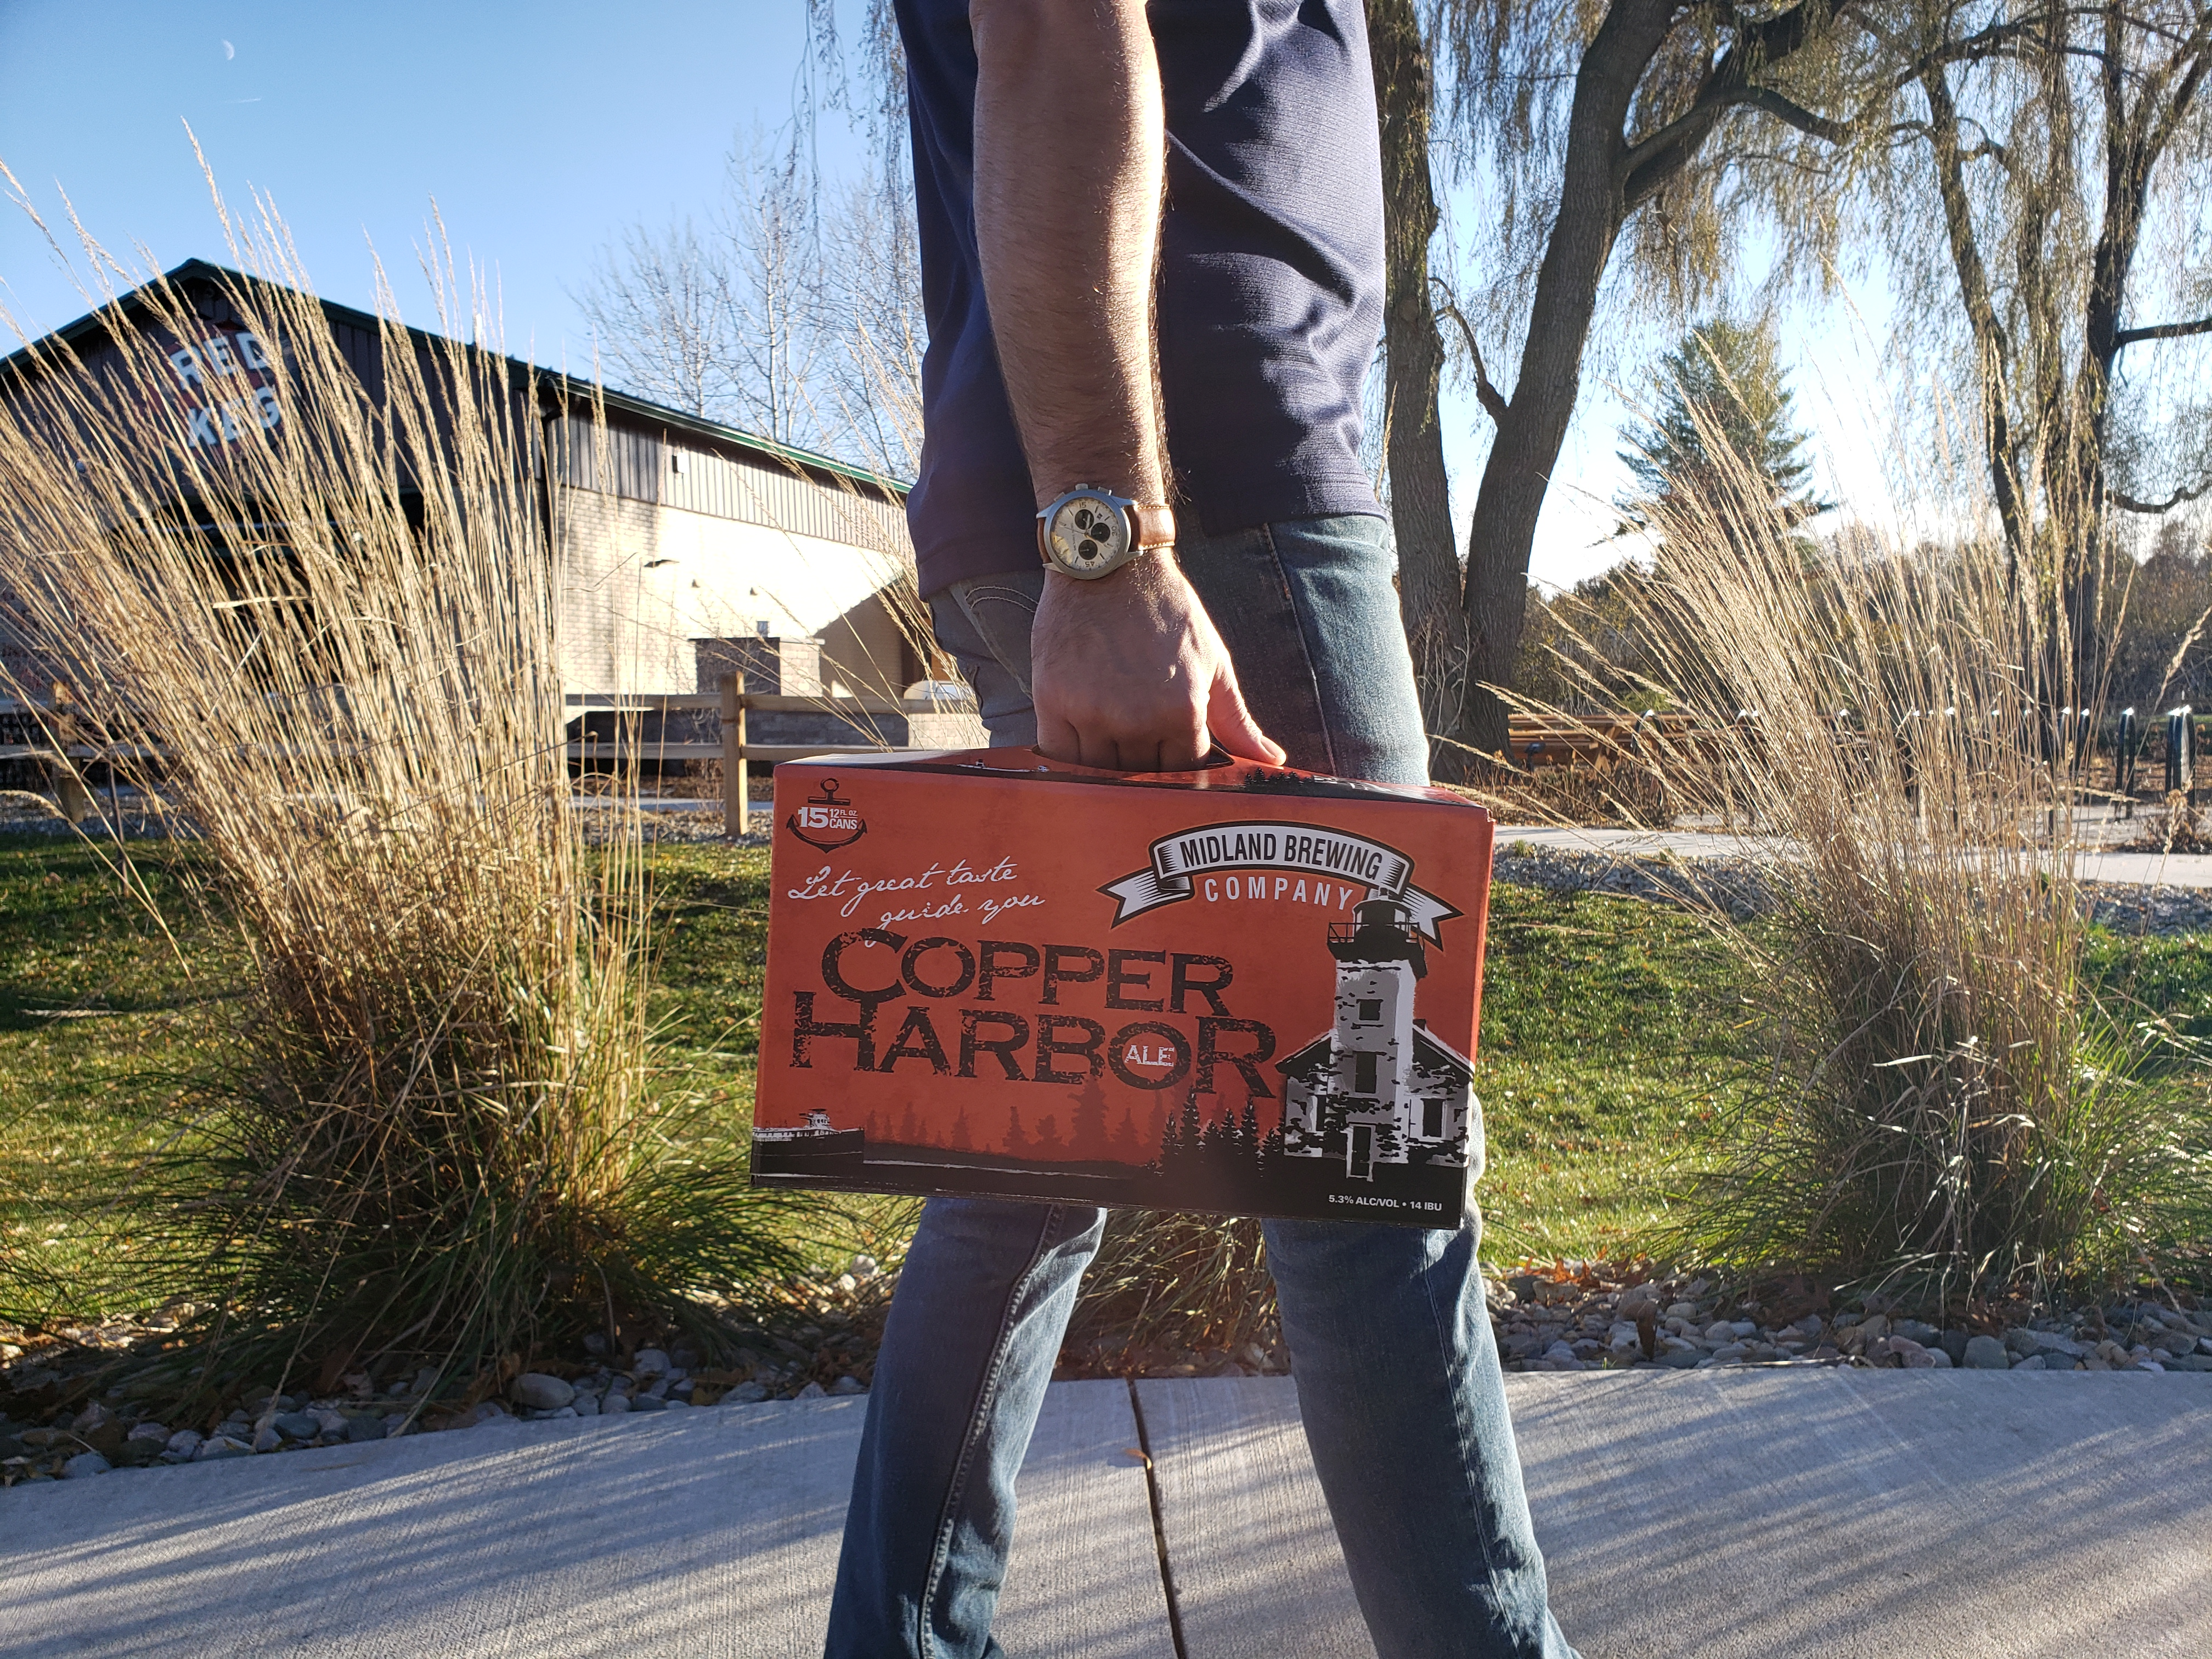 Pick up a 15 pack of our Copper Harbor before you head out for the weekend!